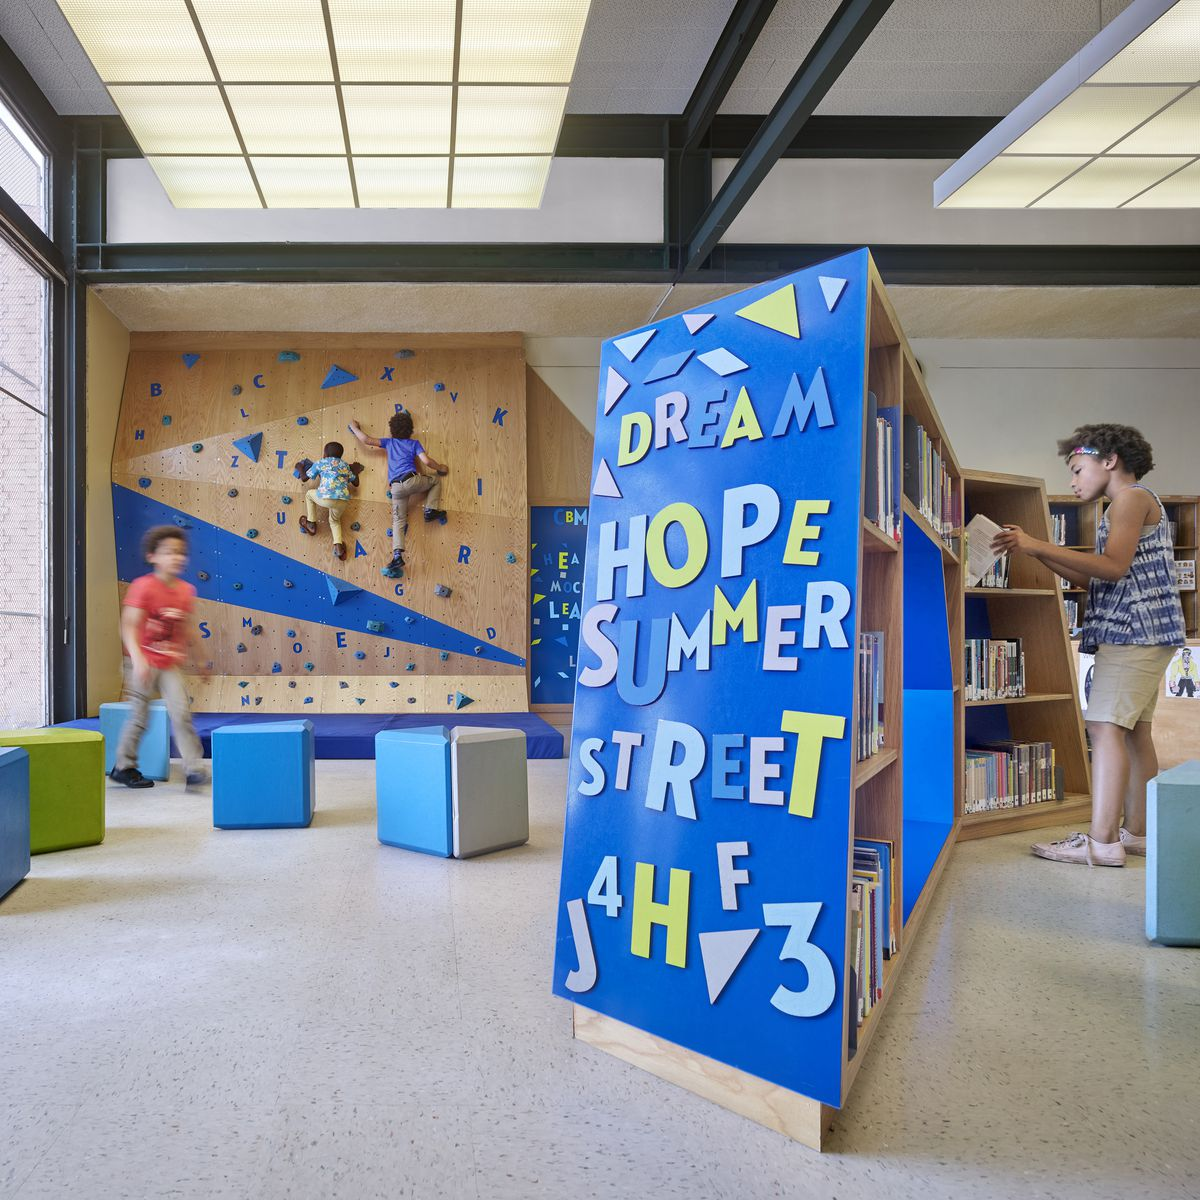 Children play on a climbing wall made of wood, with blue accents in a library. There are also blue and green decoration on the library shelves, as well as blue and green ottomans scattered in the space.